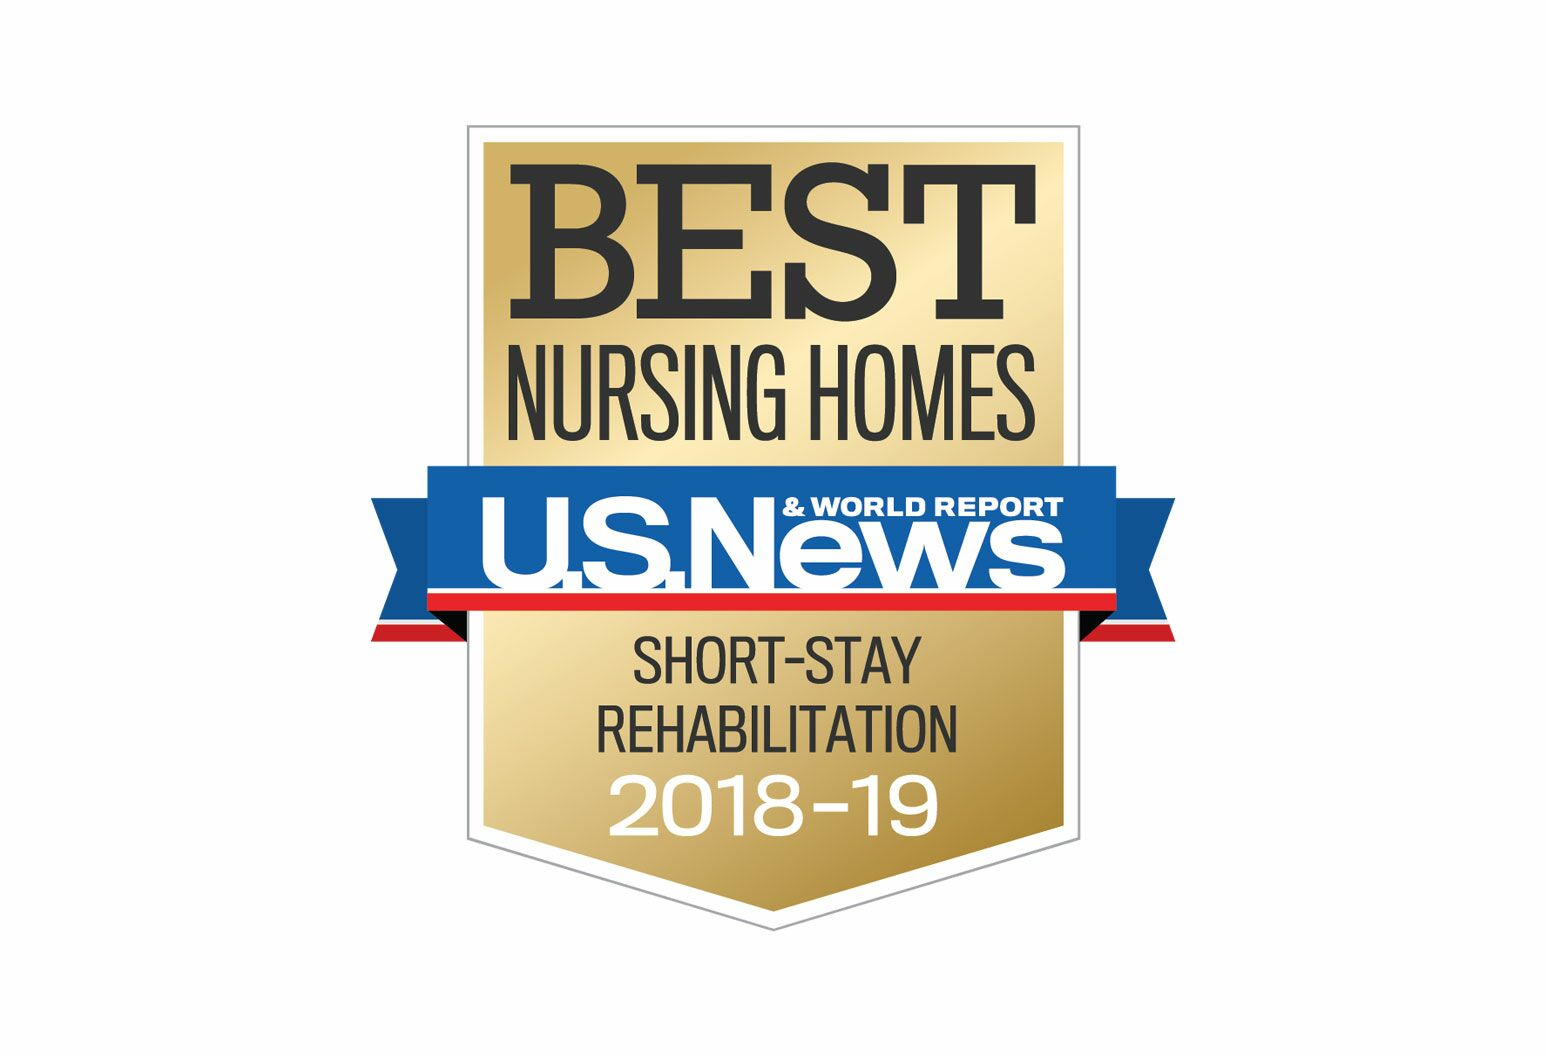 """Best Nursing Home, U.S News & World Reports, Short-Stay Rehabilitation, 2018-19"""